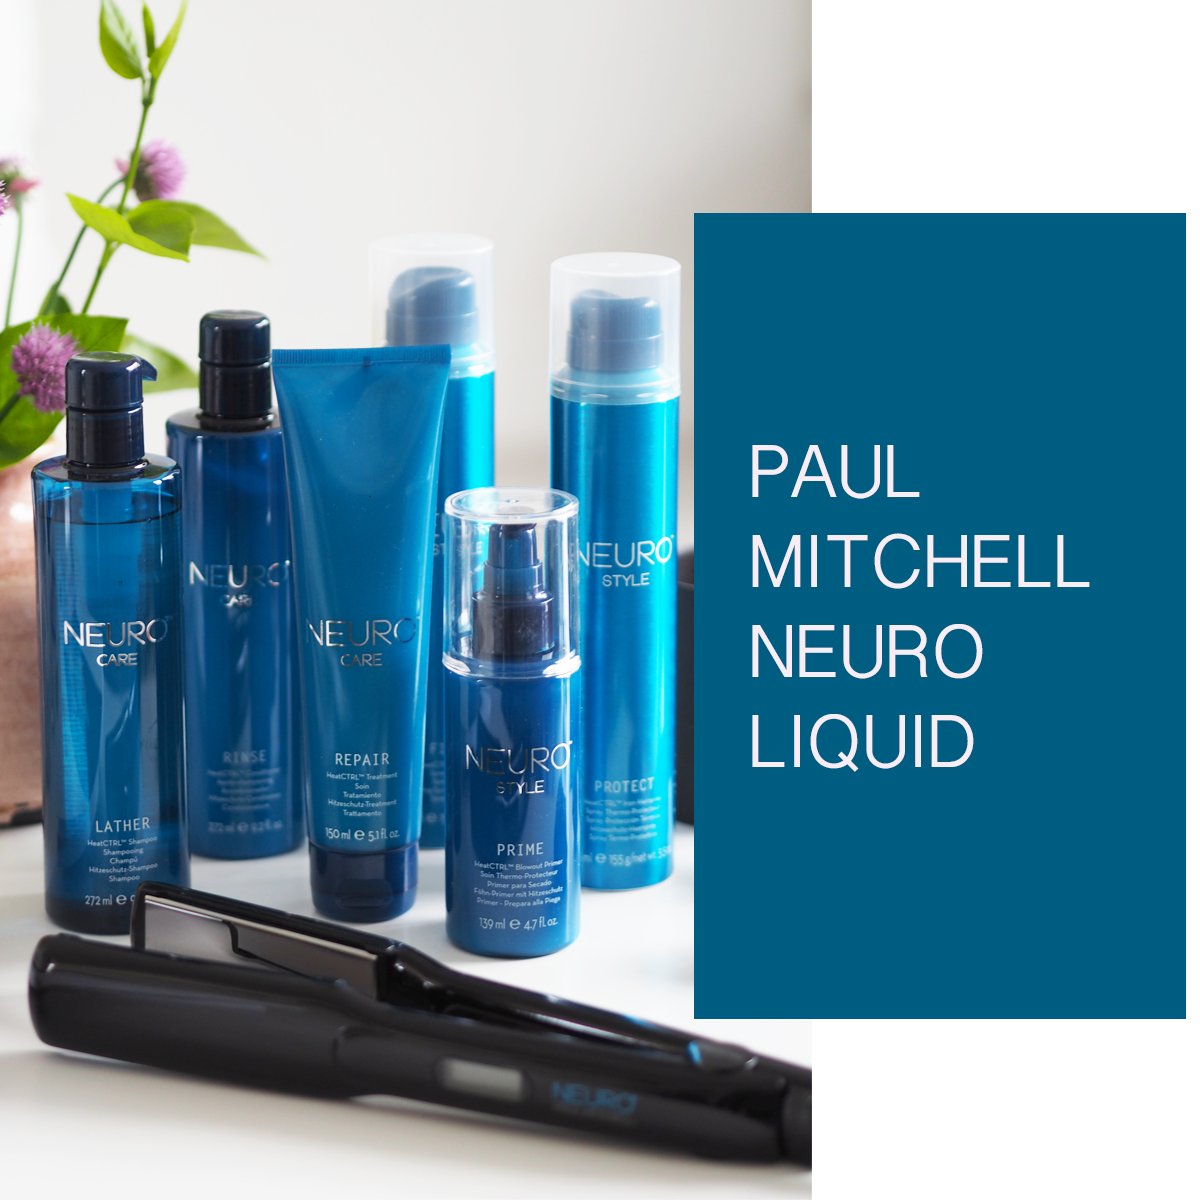 Paul Mitchell Neuro 1